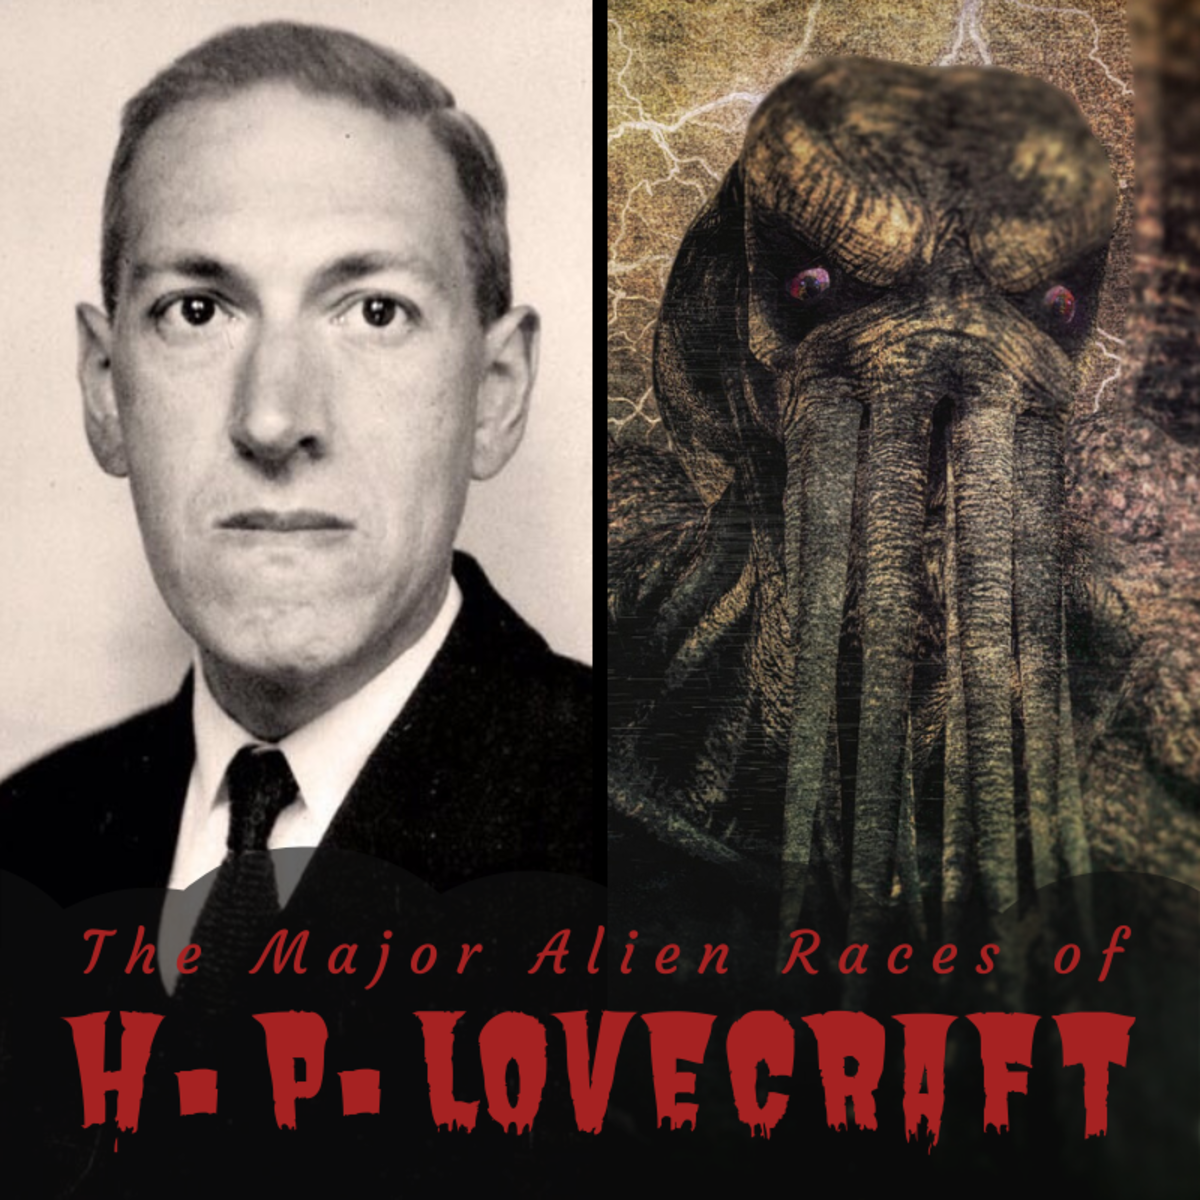 The Alien Races of H.P. Lovecraft